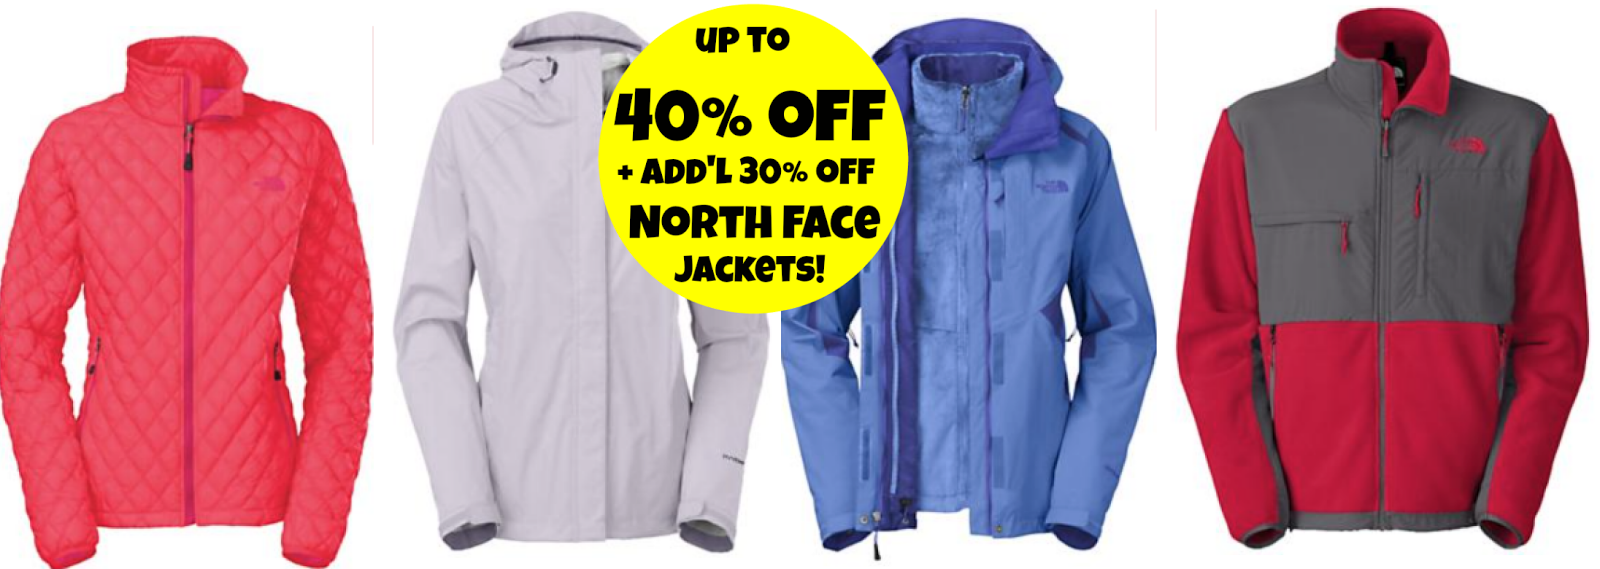 http://www.thebinderladies.com/2015/02/moosejaw-up-to-40-off-north-face.html#.VNPQ8ofduyM